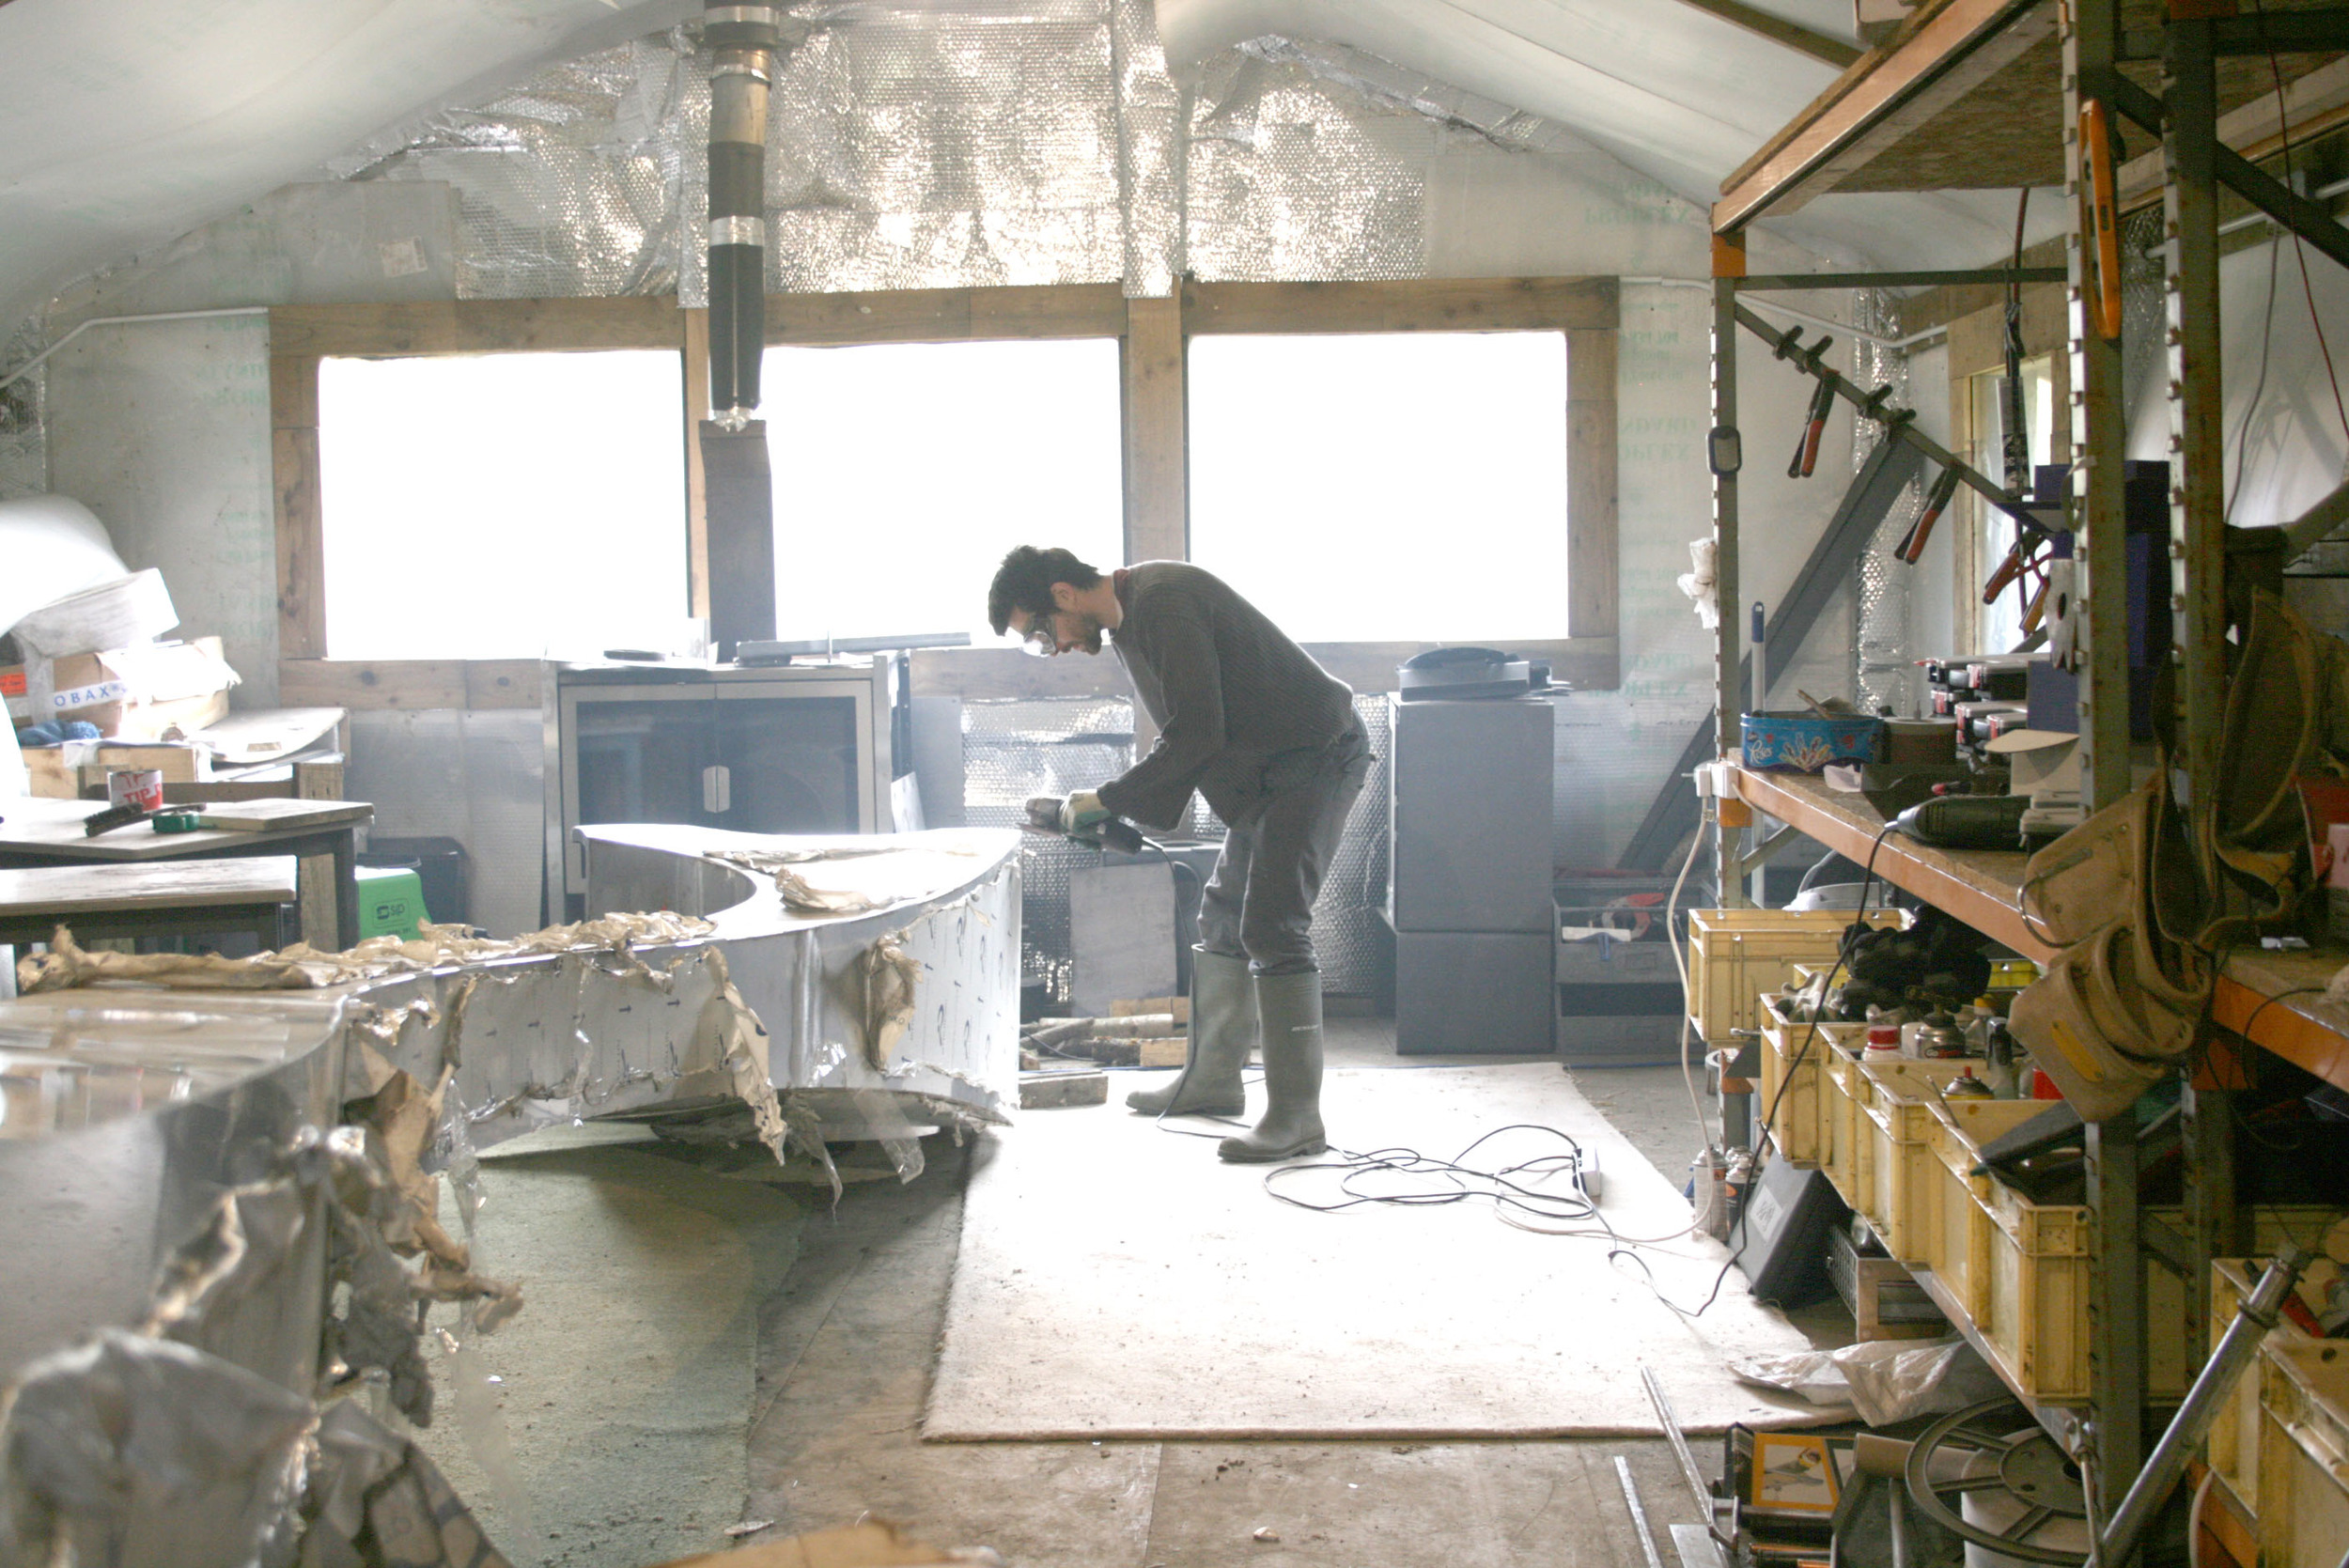 James hard at work in our Scottish Borders Workshop, hand-crafting a unique stove commission.